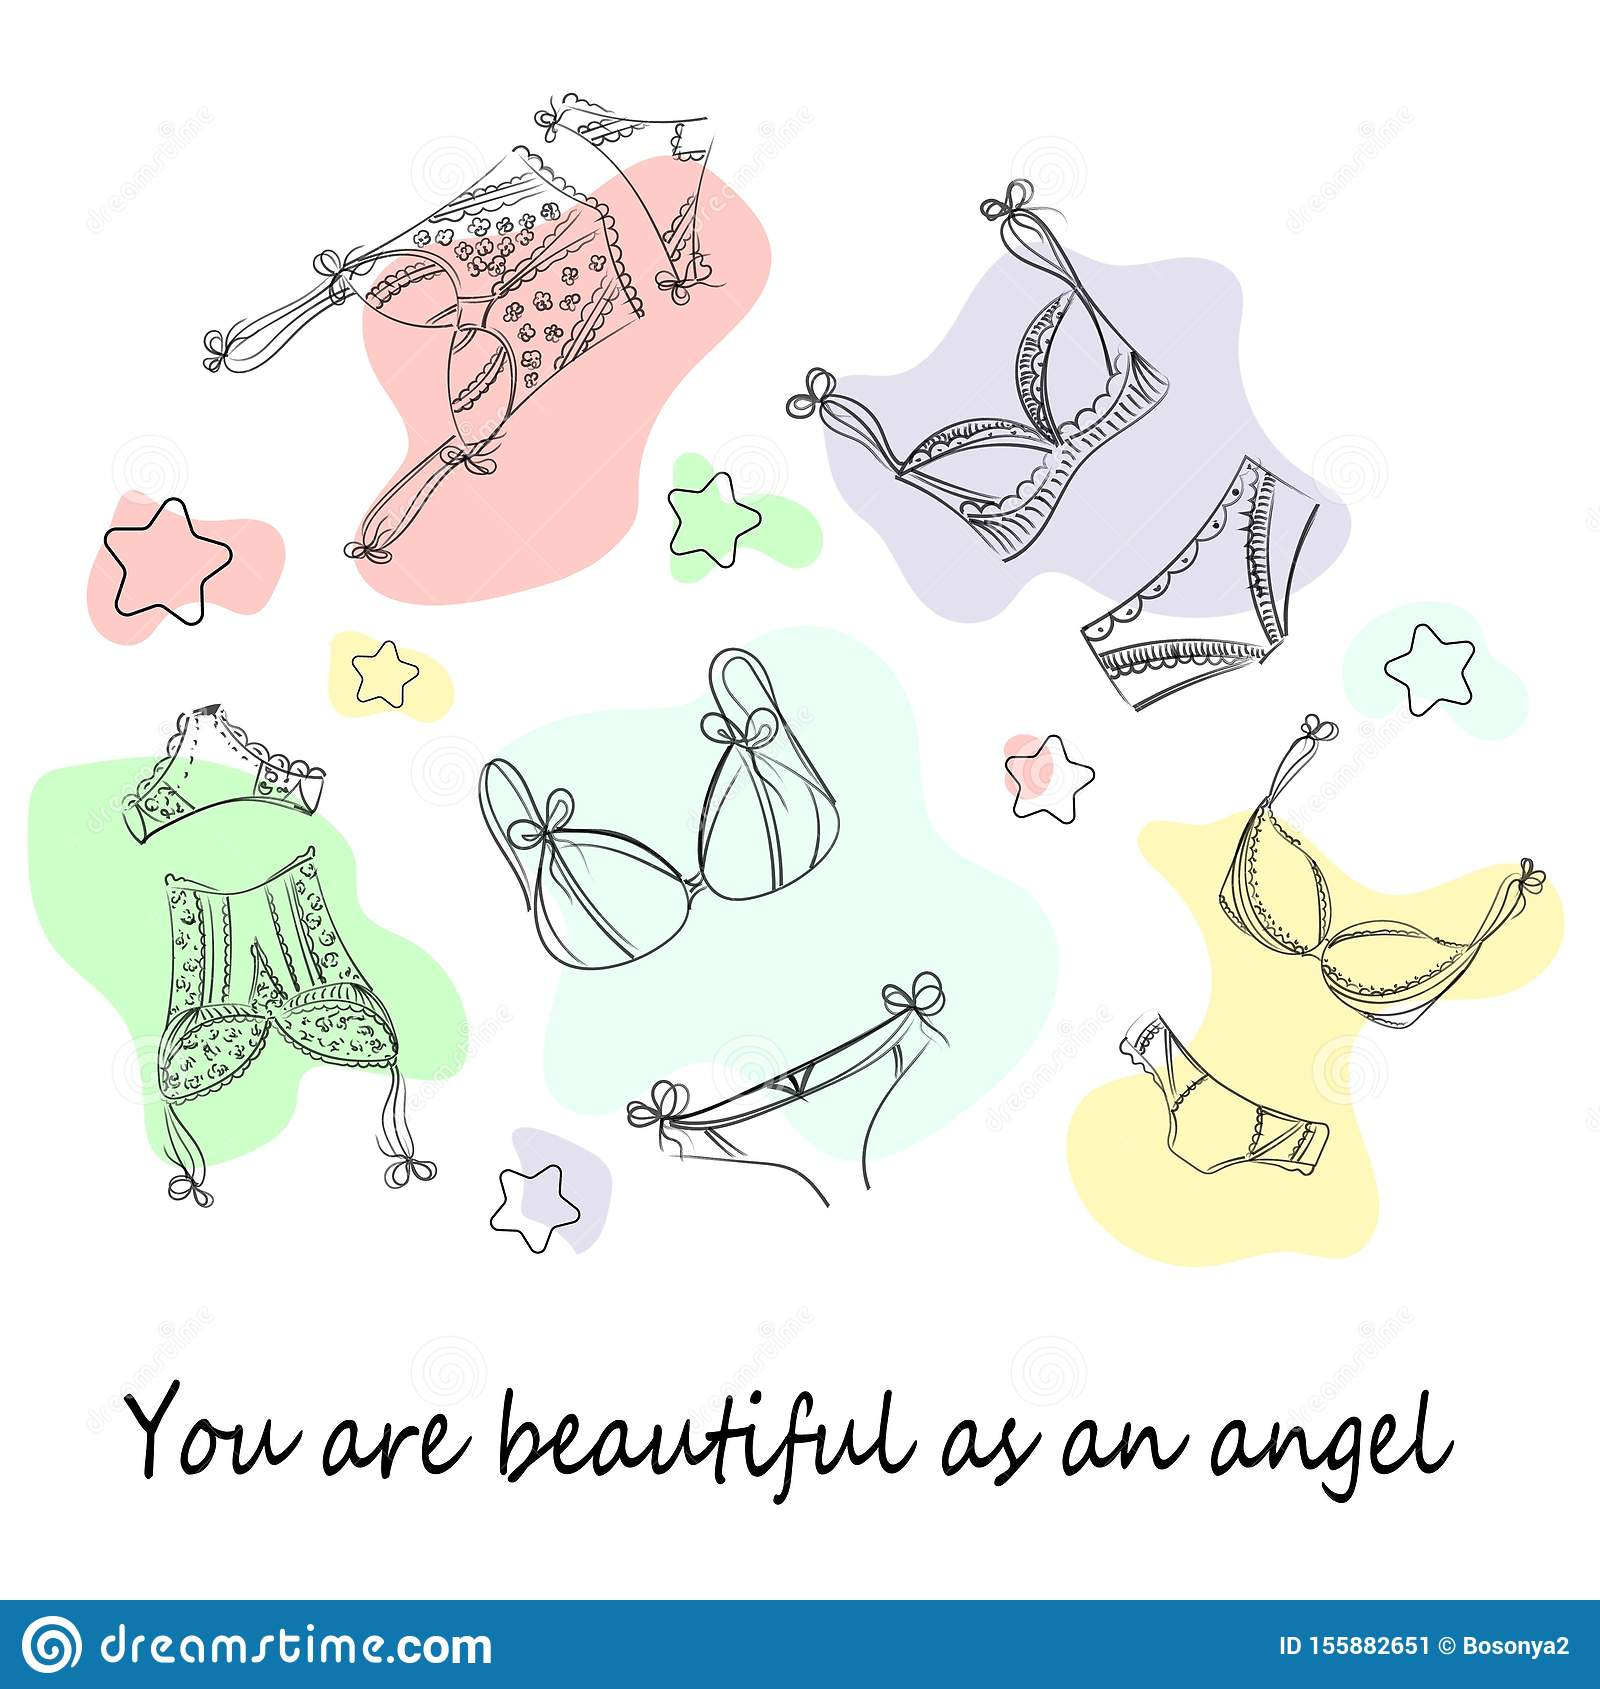 Fashionable lingerie collection for women, sketch illustration. Logo of women`s lace underwear, panties, bras, corsets,